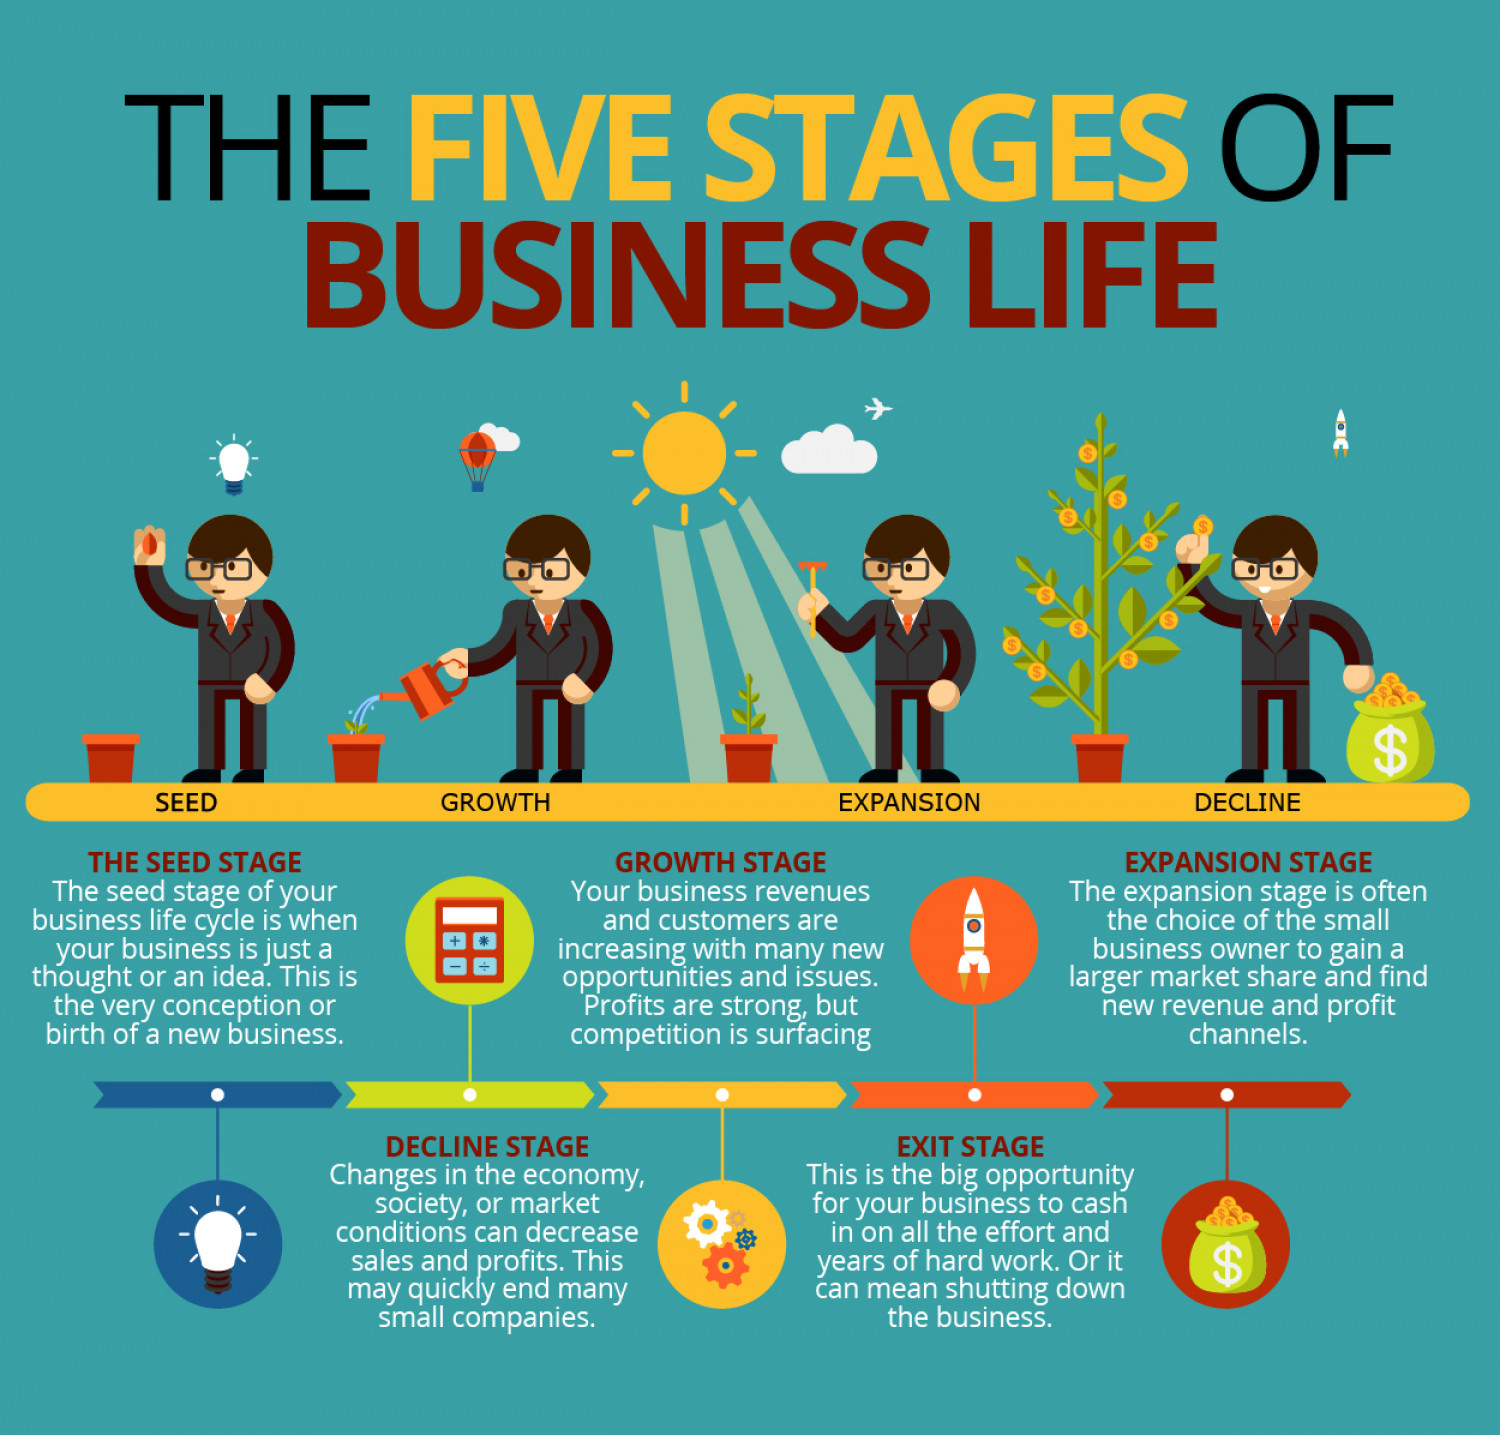 The Five Stages Of Business Life